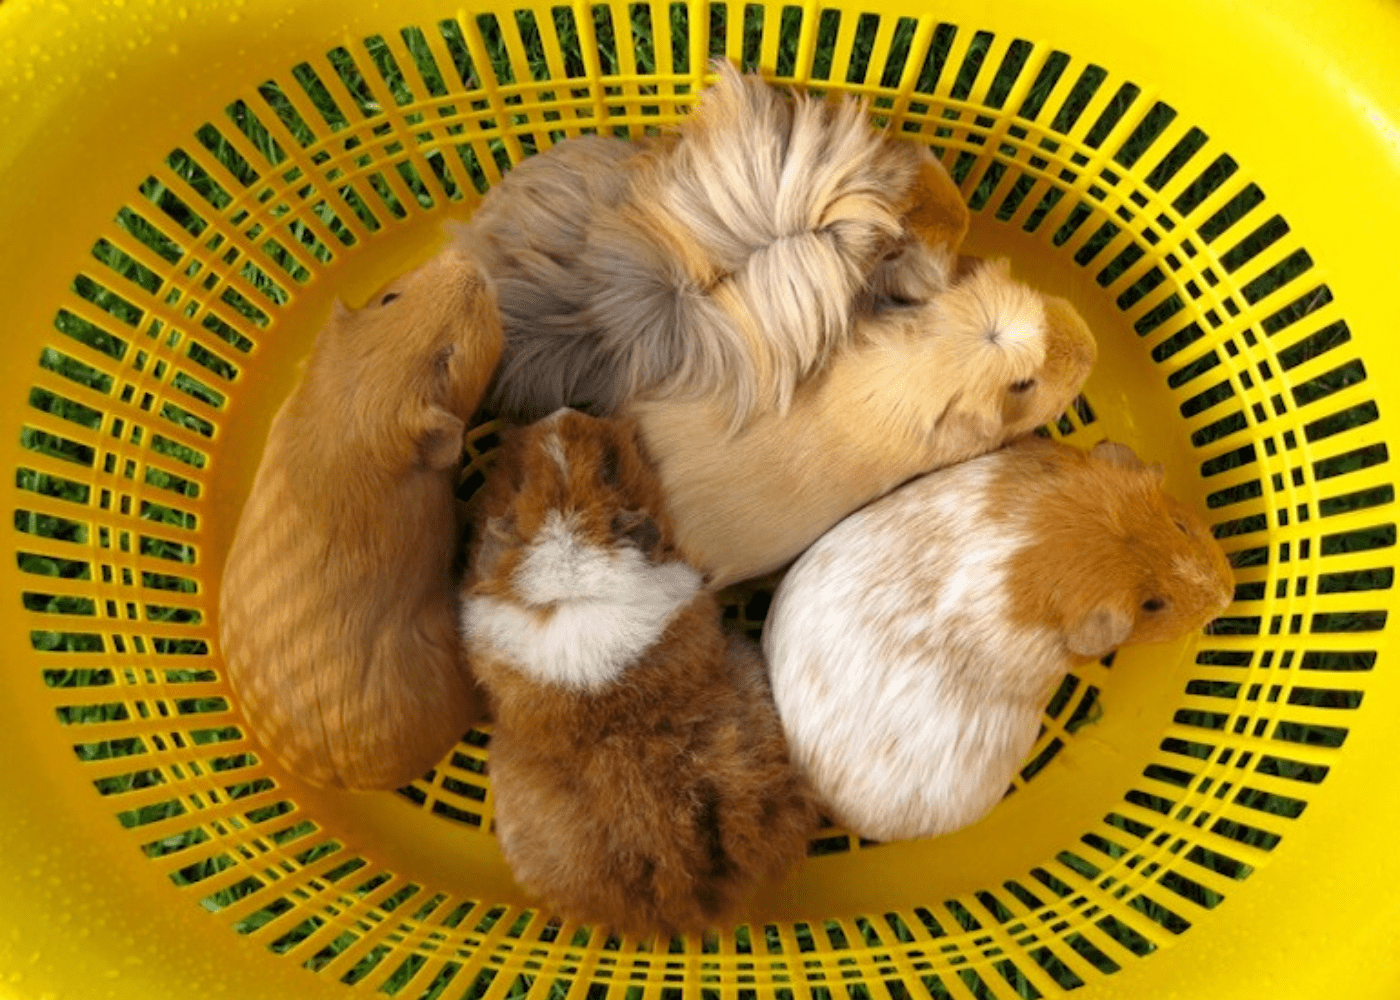 Small pets for kids in Singapore: which animals are best for children?